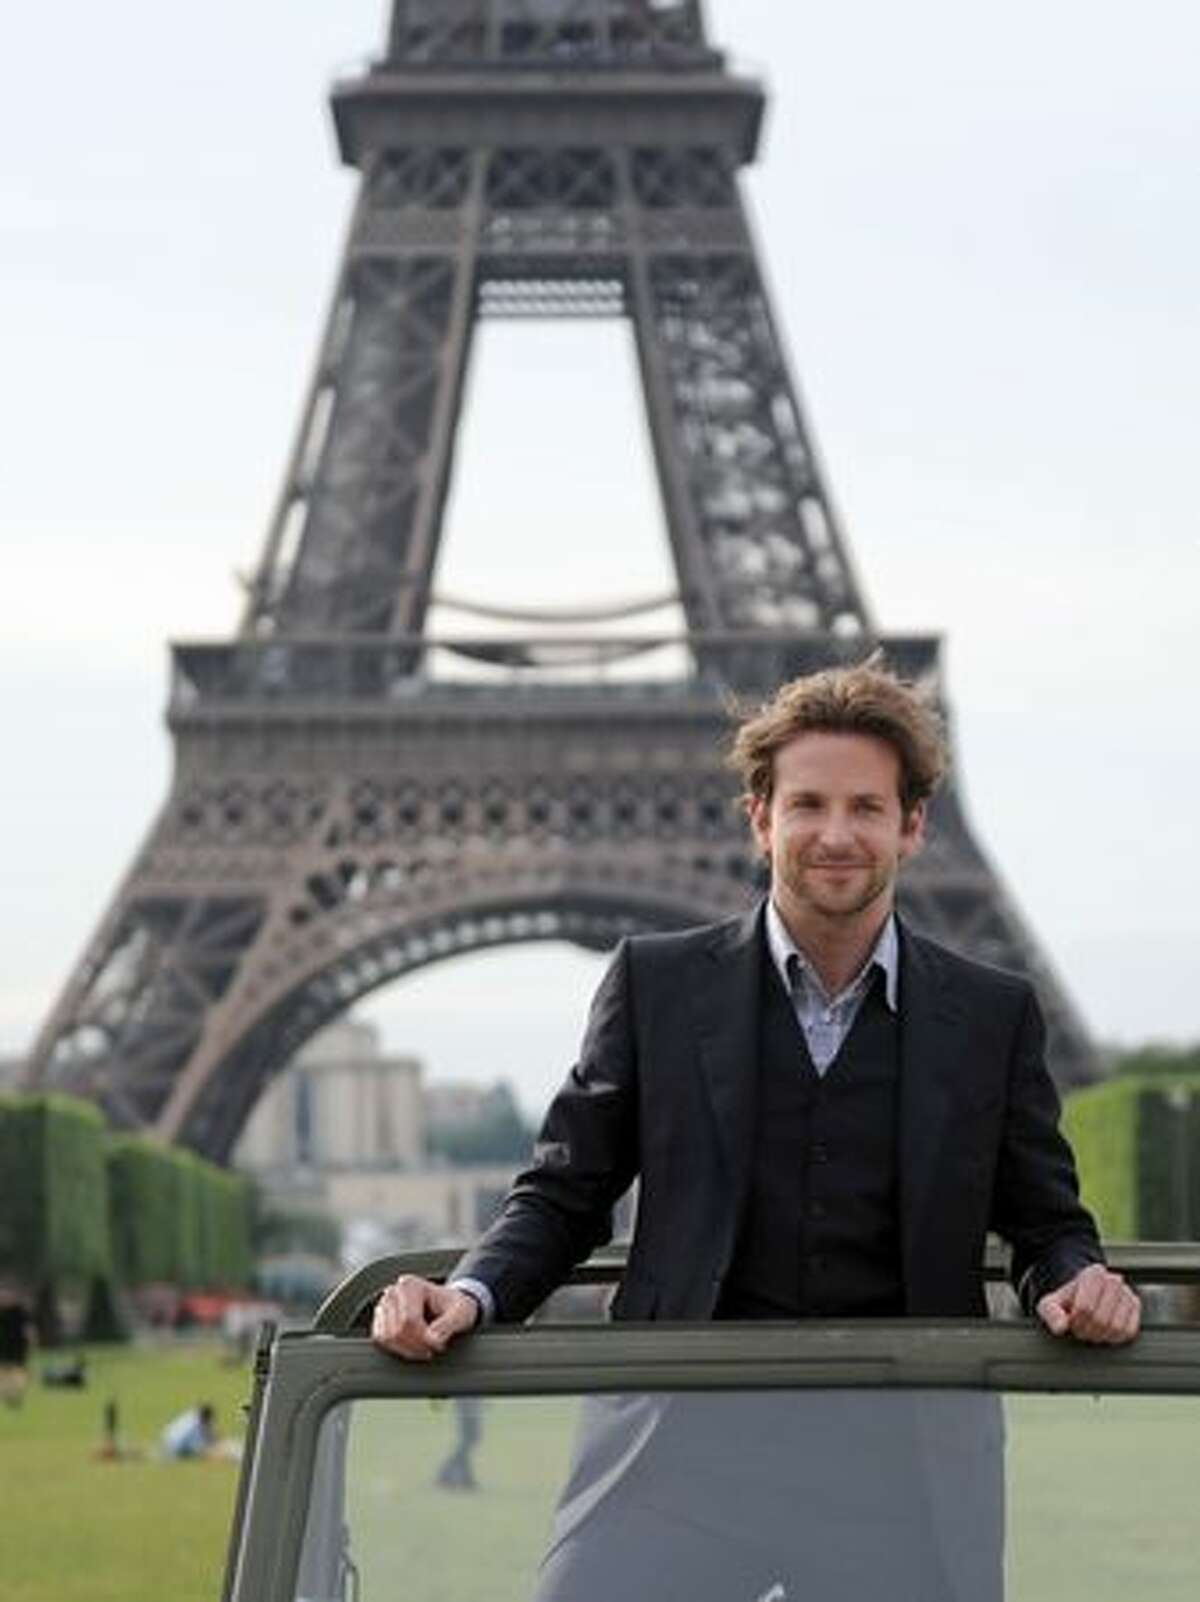 Actor Bradley Cooper poses in a car in front of the Eiffel Tower during a photocall for the release in France of the A-team film.